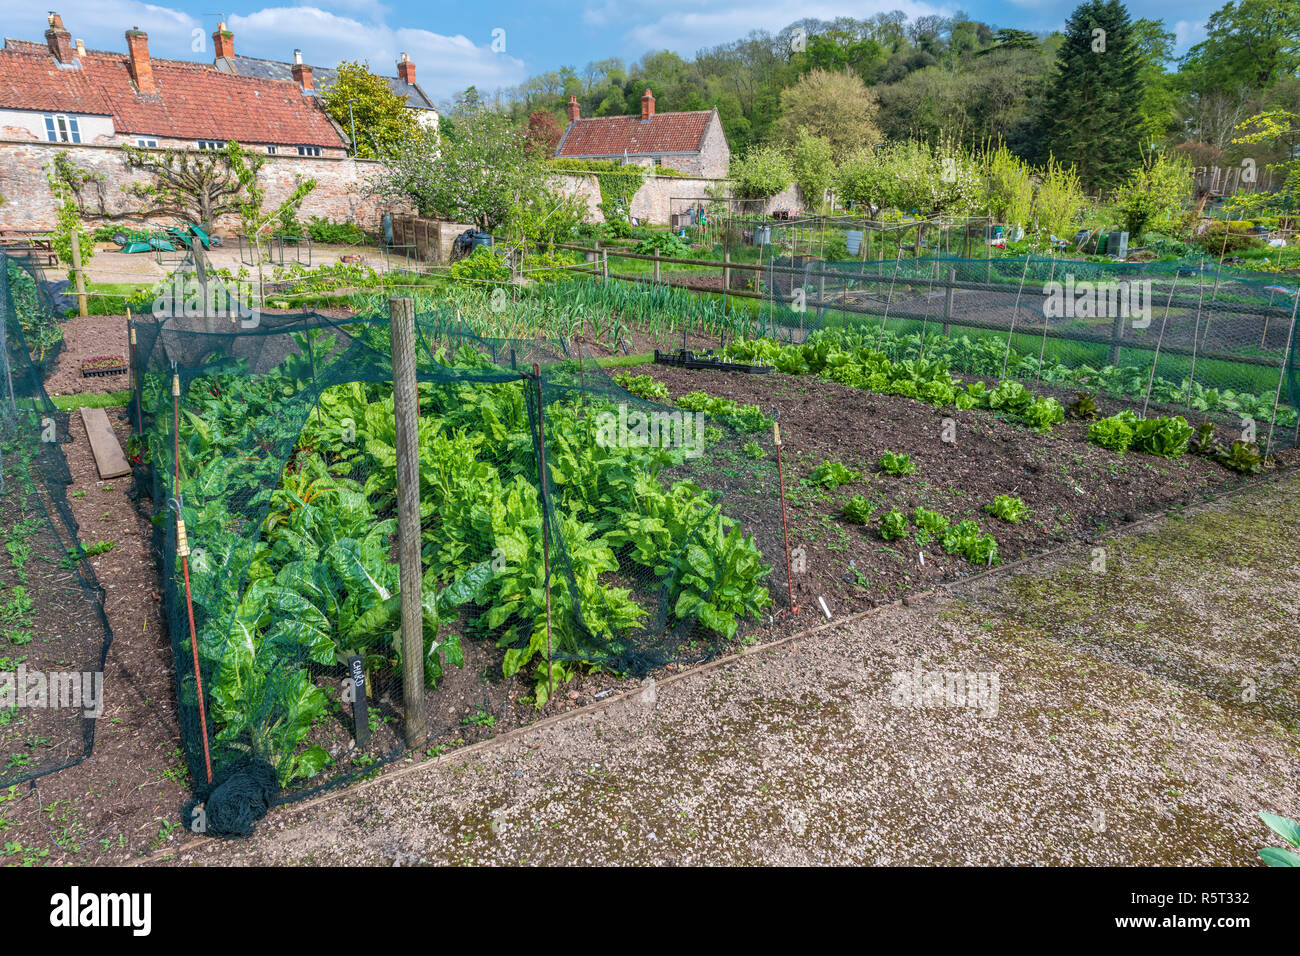 A well tended springtime vegetable plot growing chard, spinach and lettuce on an allotment in Somerset, England - Stock Image